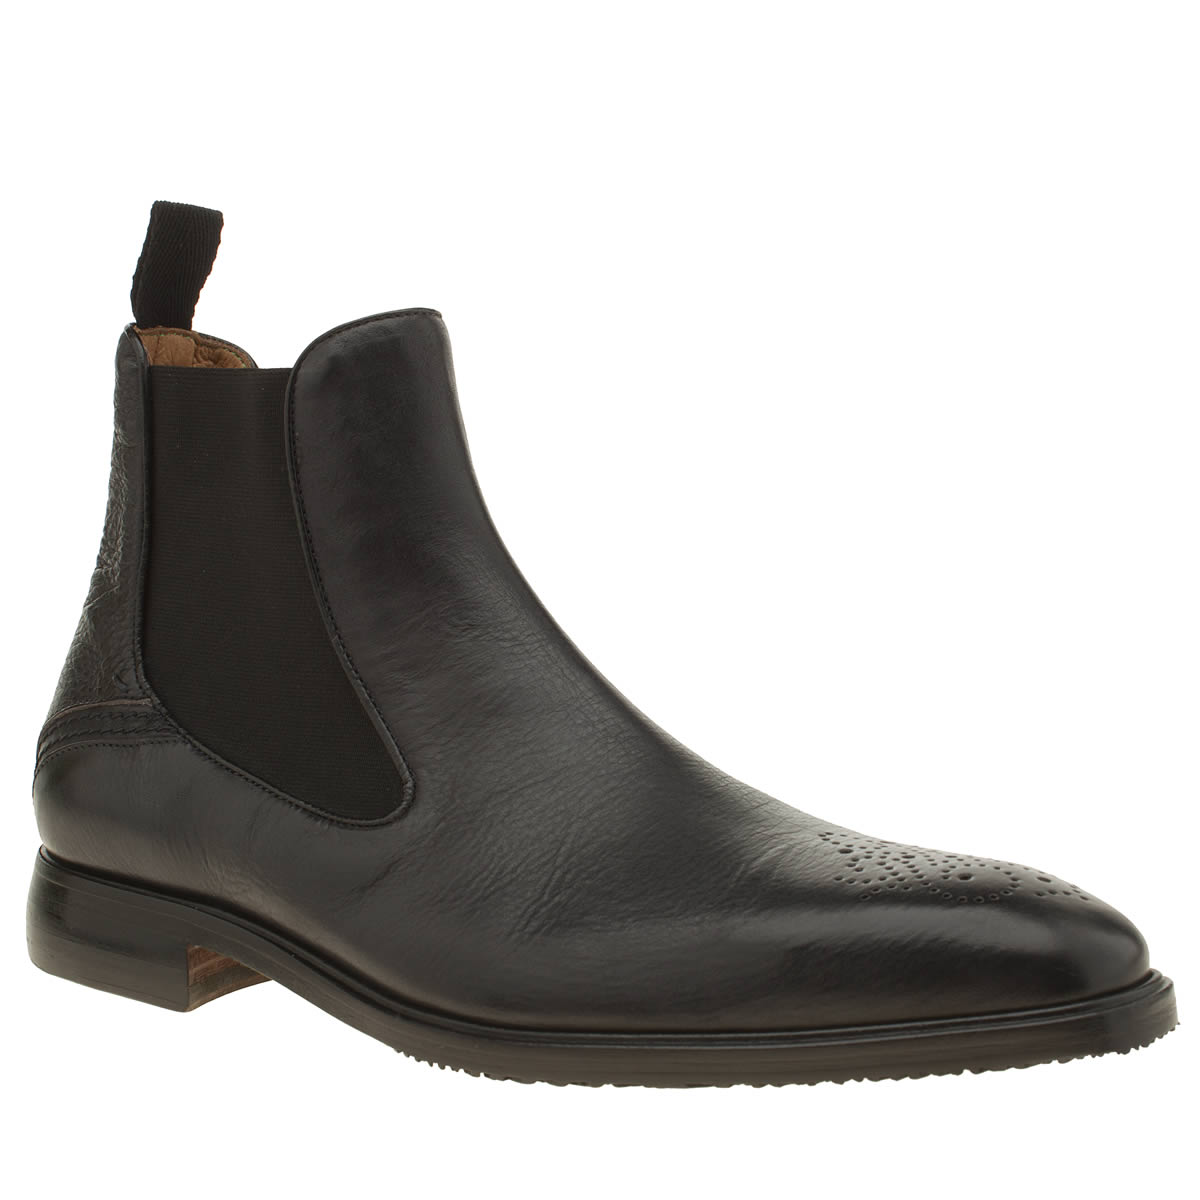 Oliver Sweeney Oliver Sweeney Navy Rocca Boots